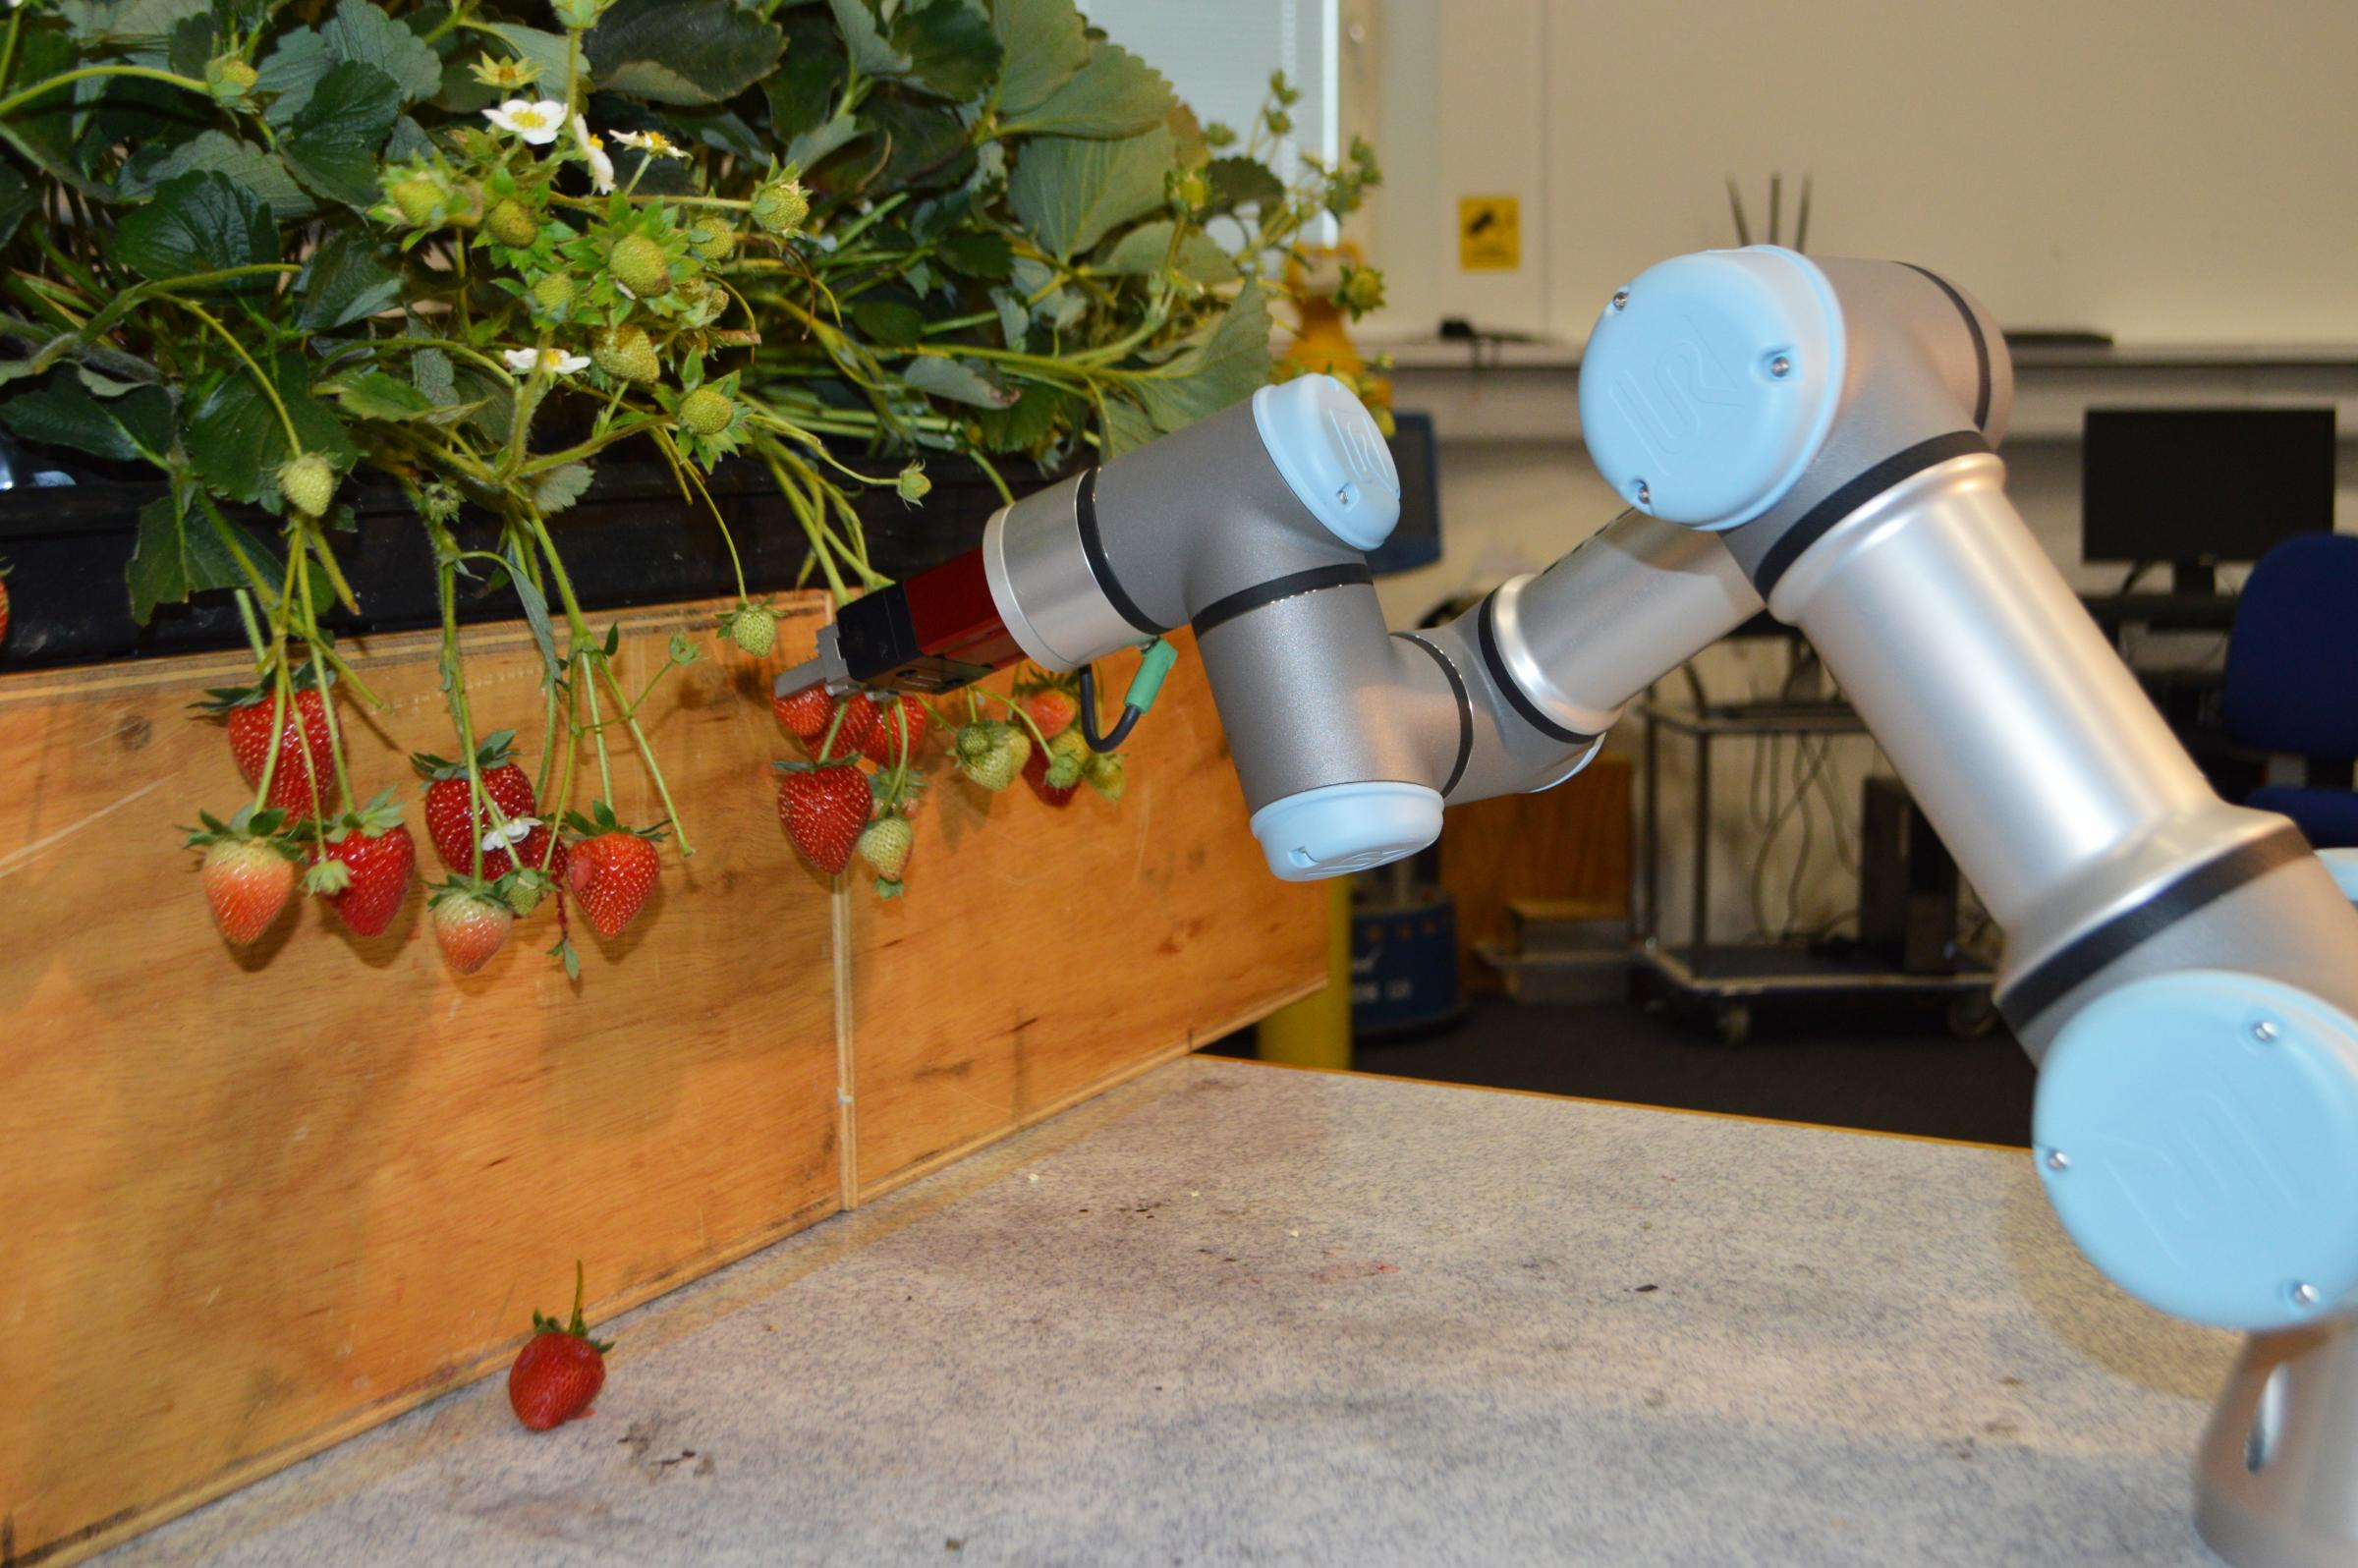 A robotic arm able to pick strawberries at Tiptree farms. Picture: University of Essex